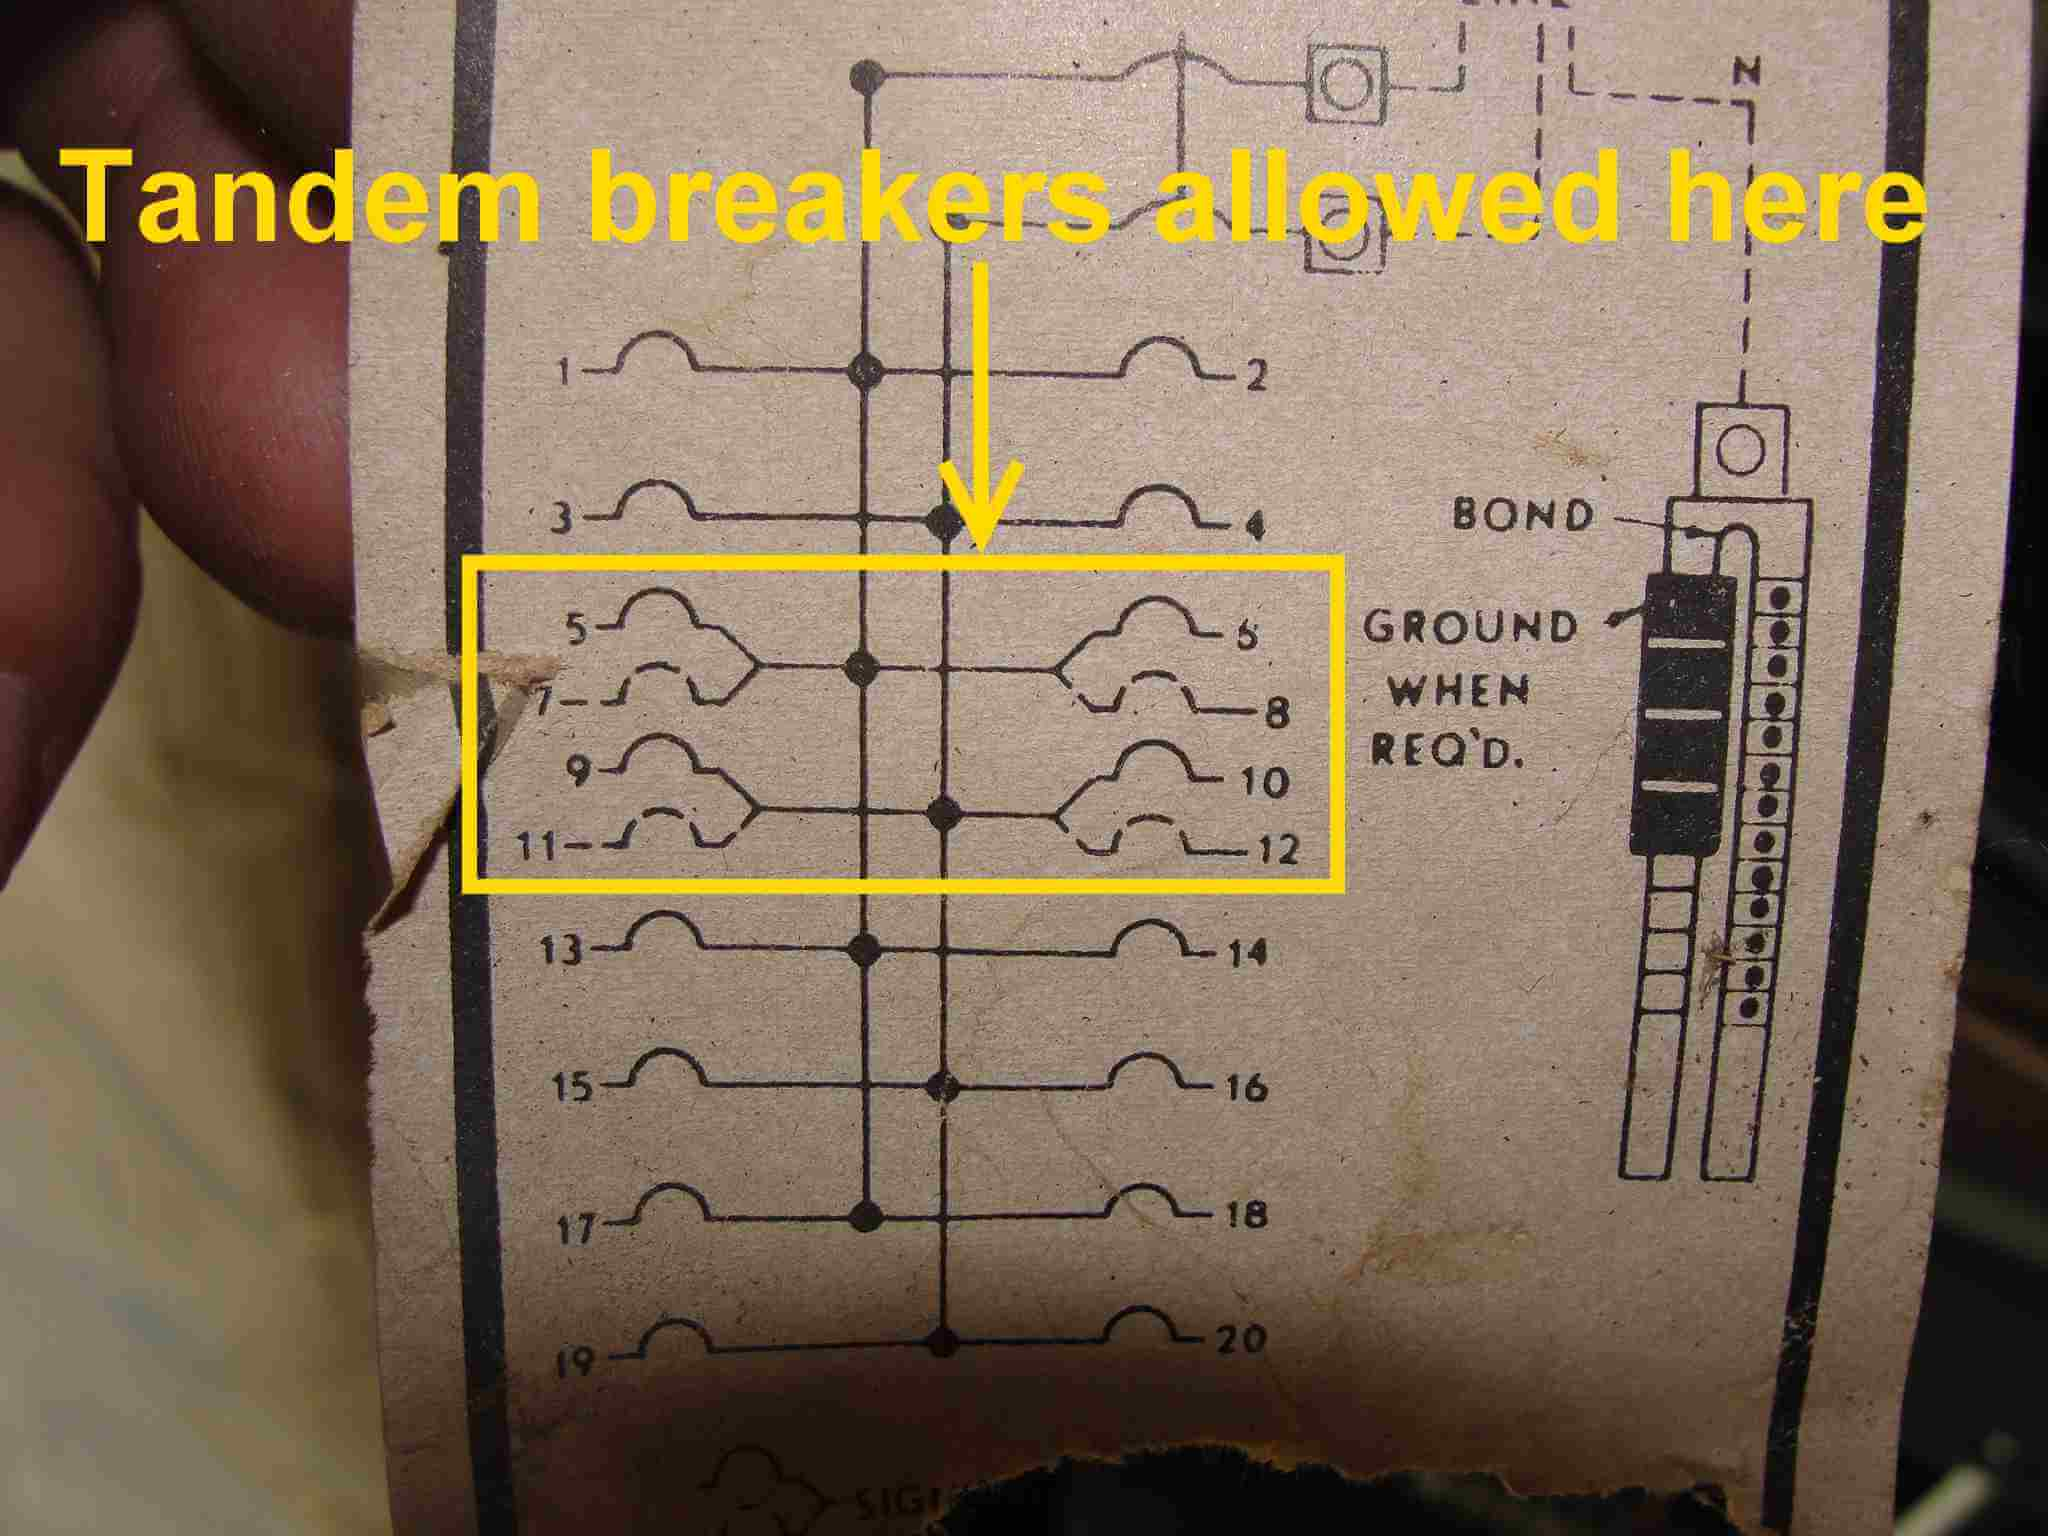 How To Know When Tandem Circuit Breakers Can Be Used Aka Cheater Electrical Wiring In Houses Panelboard Diagram 2